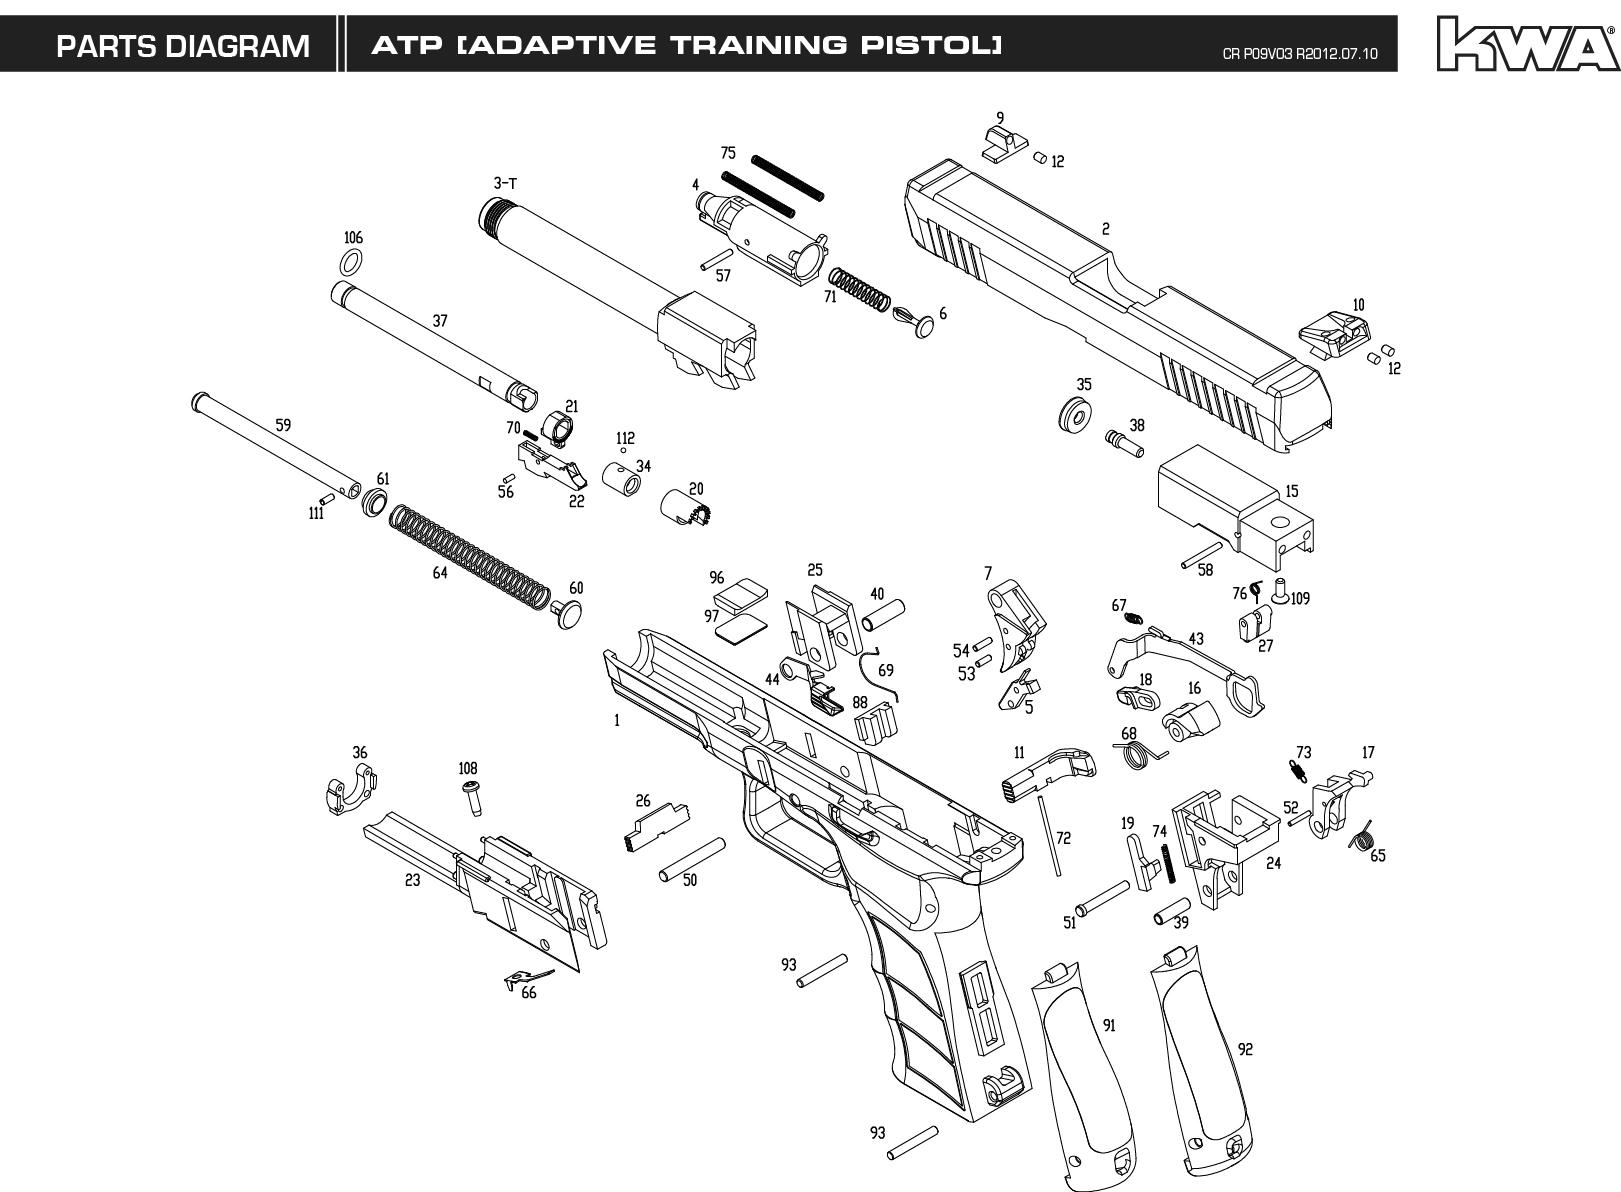 Kwa Gun Manual Atp Airsoft Shop Guns Sniper Rifles Download Free Schematic 43 Please Here